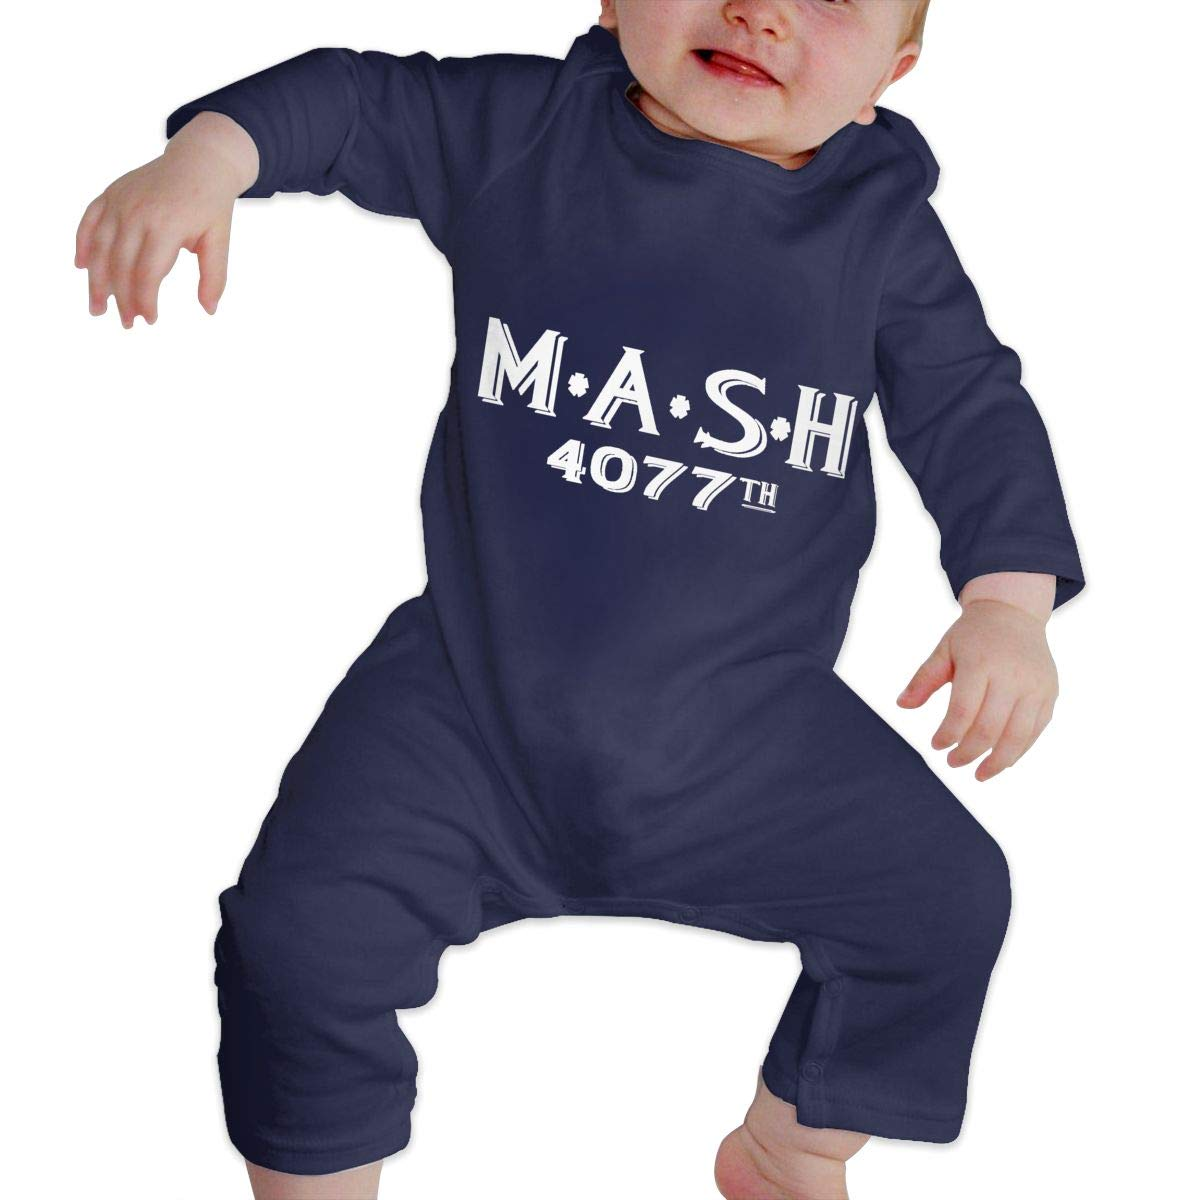 MASH Distressed Hedging Unisex Long Sleeve Baby Gown Baby Bodysuit Unionsuit Footed Pajamas Romper Jumpsuit